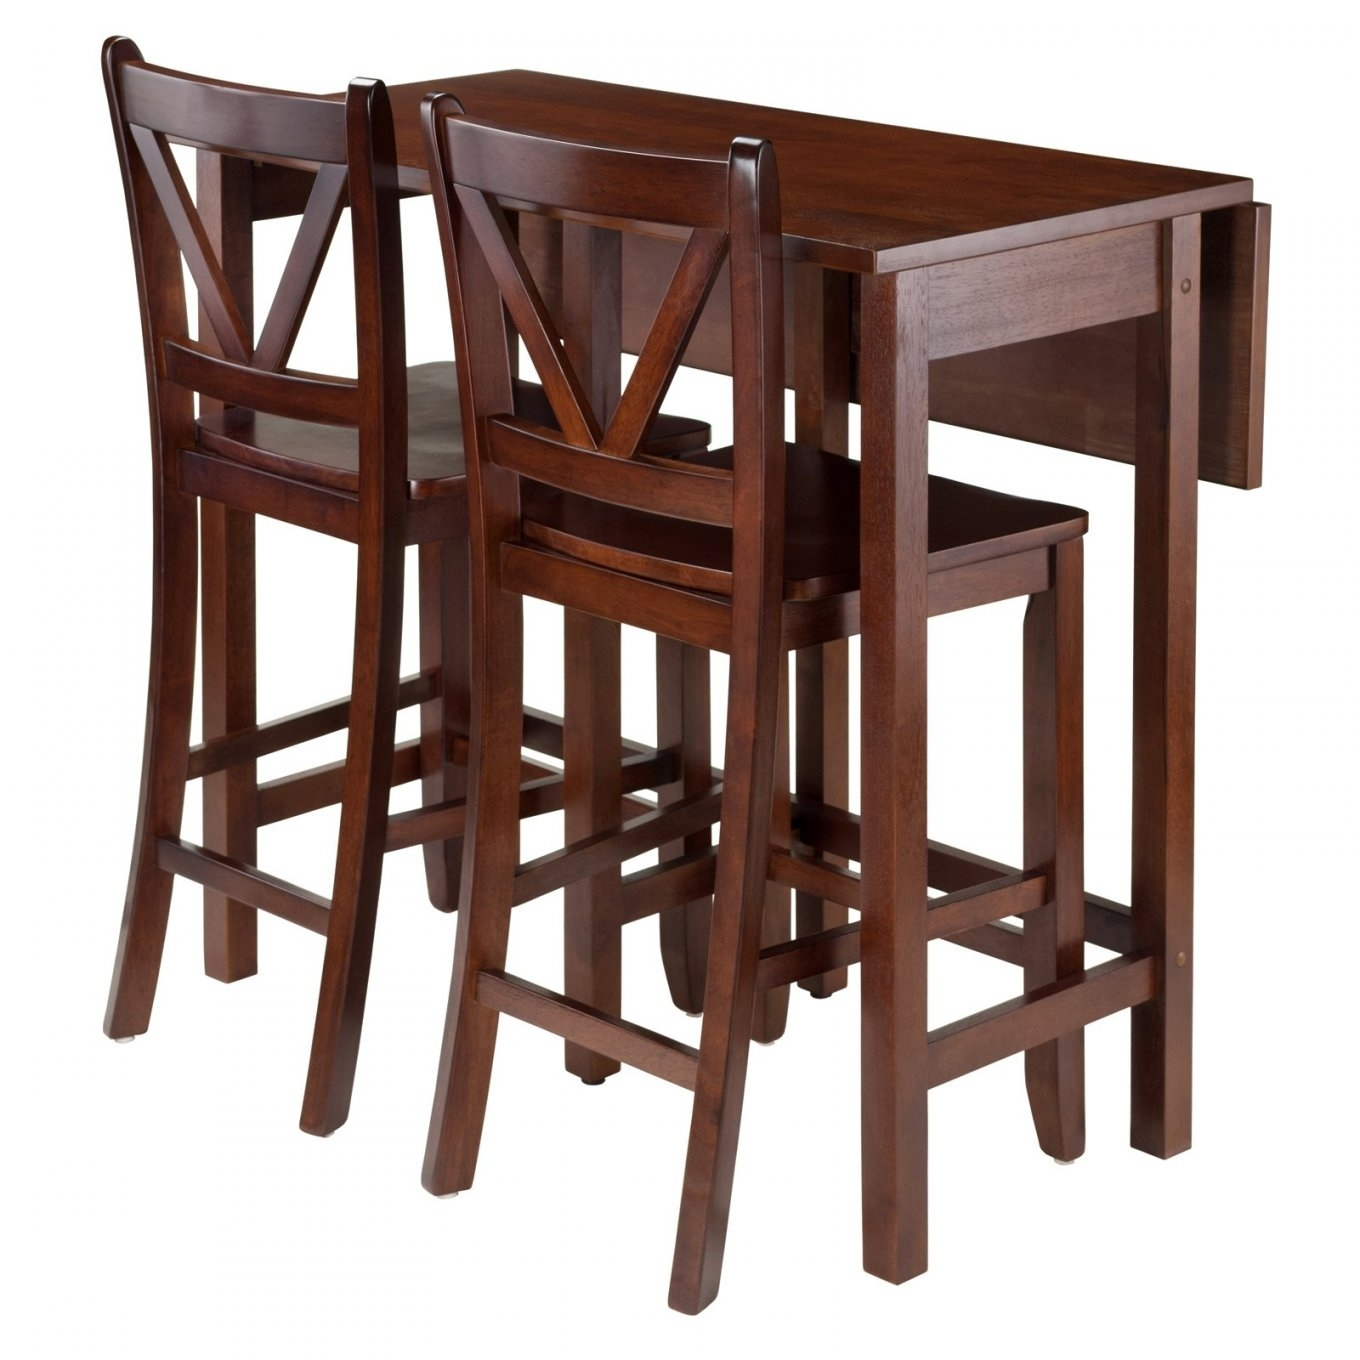 Finley Home Palazzo 6 Piece Dining Set With Bench | Hayneedle Inside 2017 Palazzo 3 Piece Dining Table Sets (Photo 14 of 20)